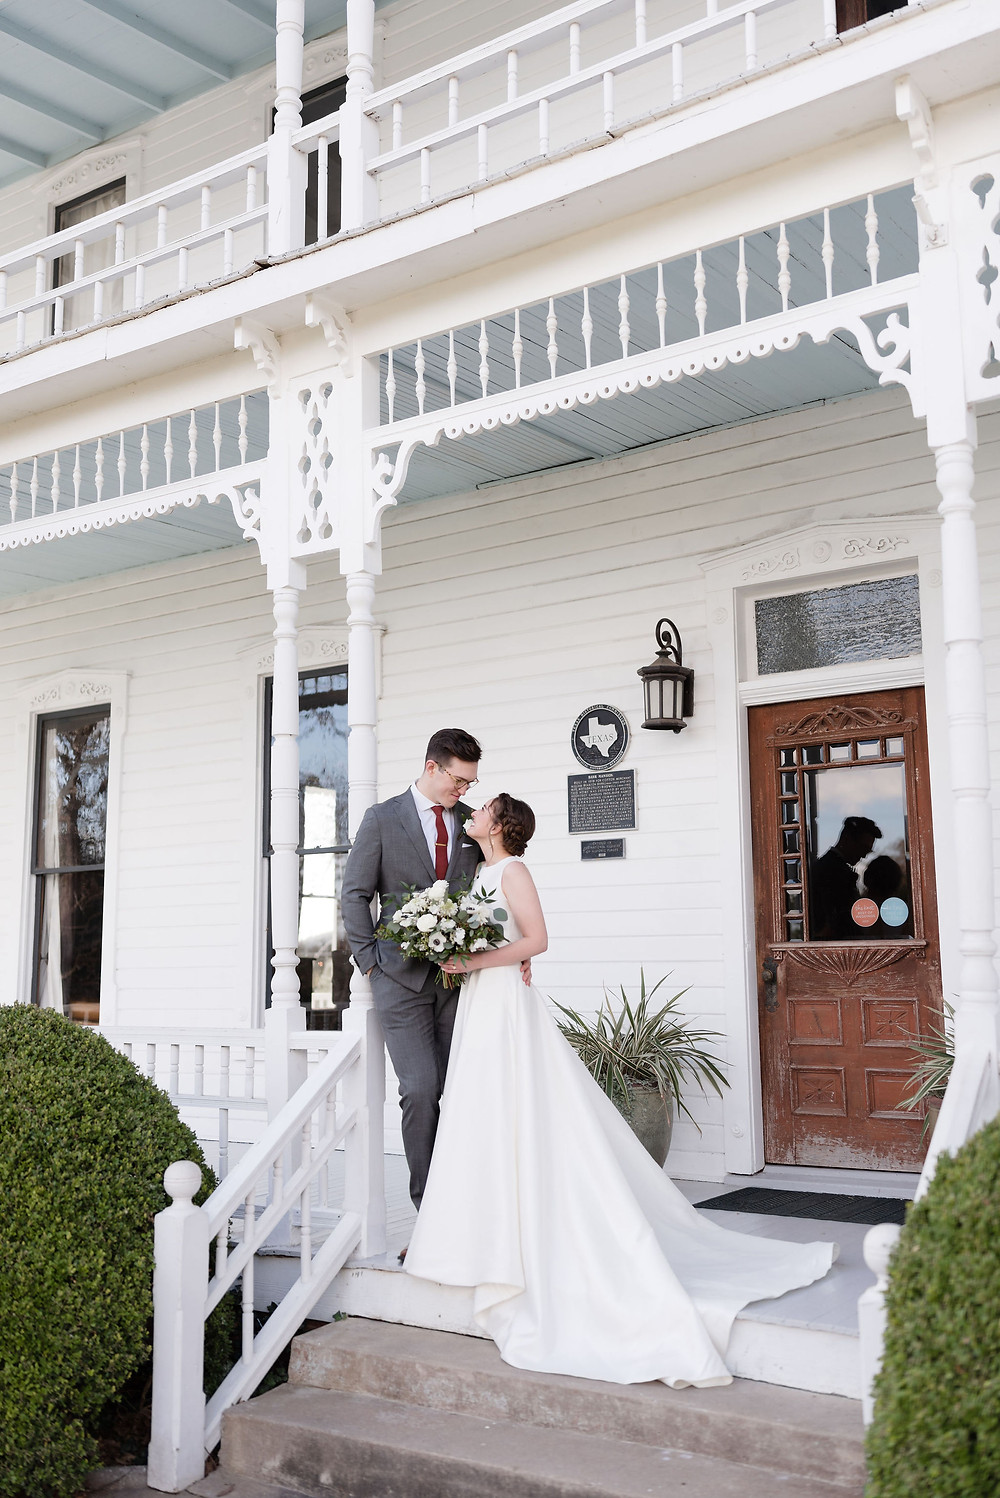 a couple posing for their wedding photos on the porch at Barr Mansion